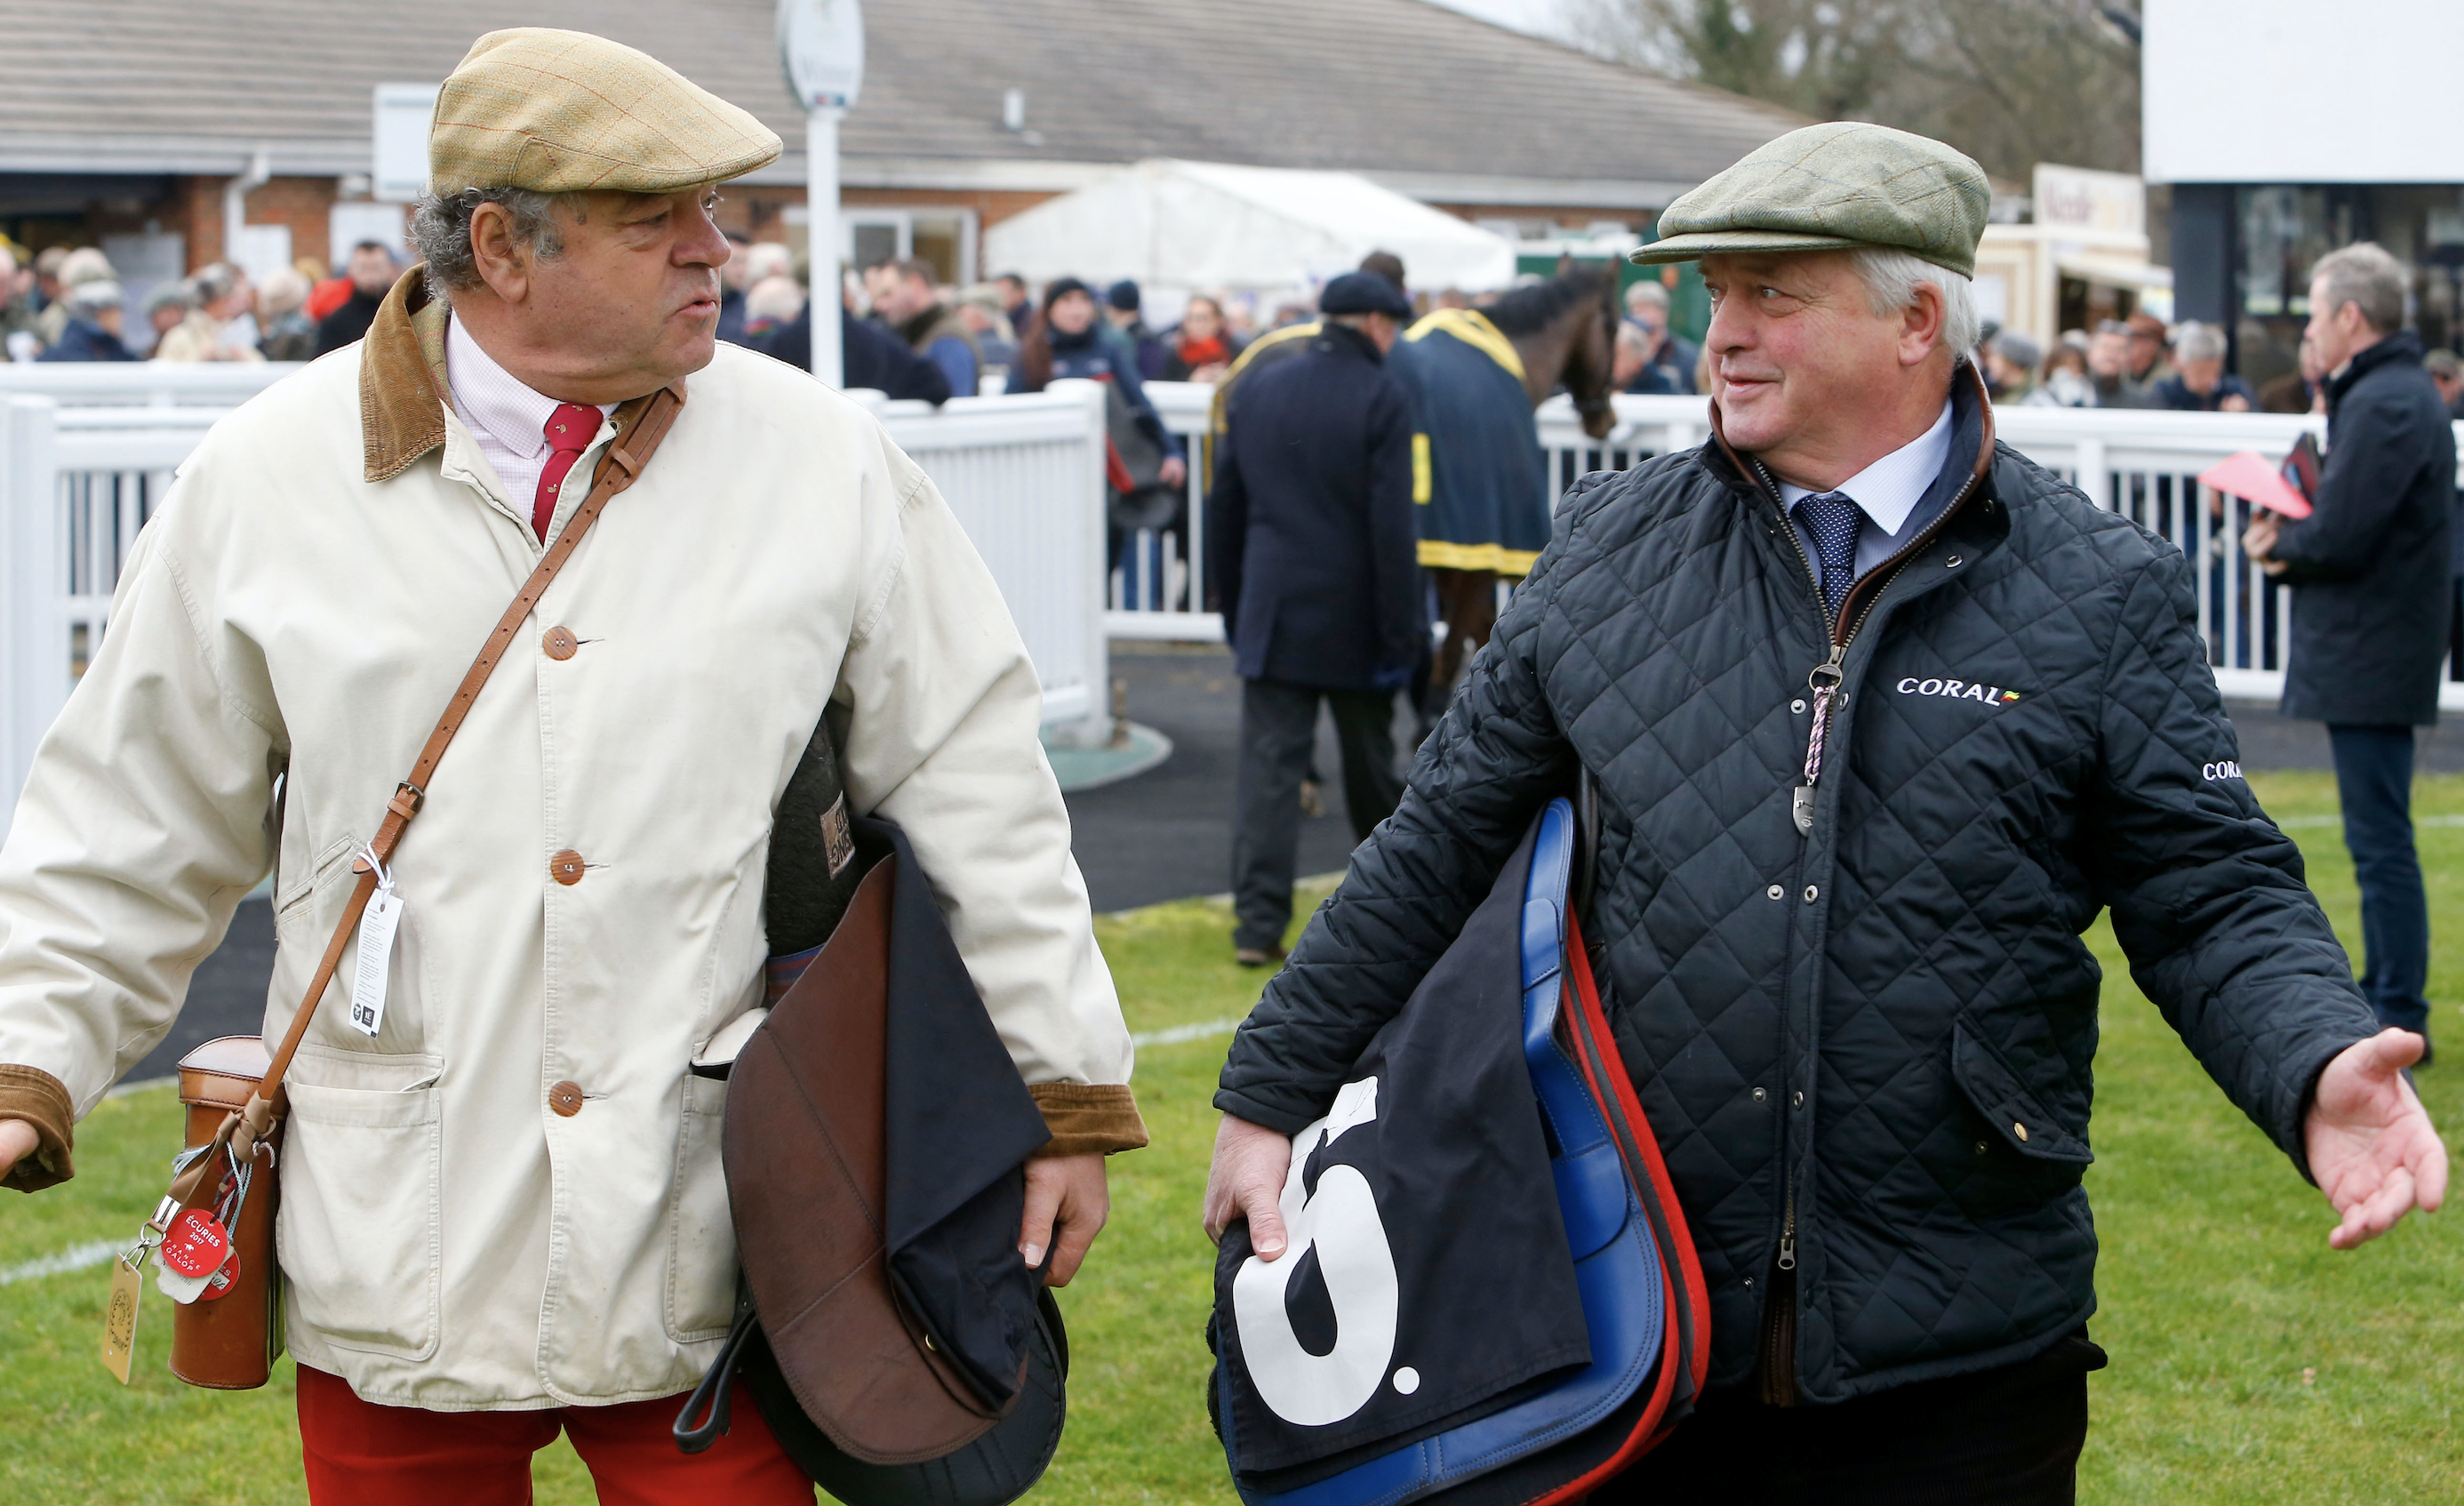 Macaire and Colin Tizzard in conversation at the Sussex track  (Focusonracing)